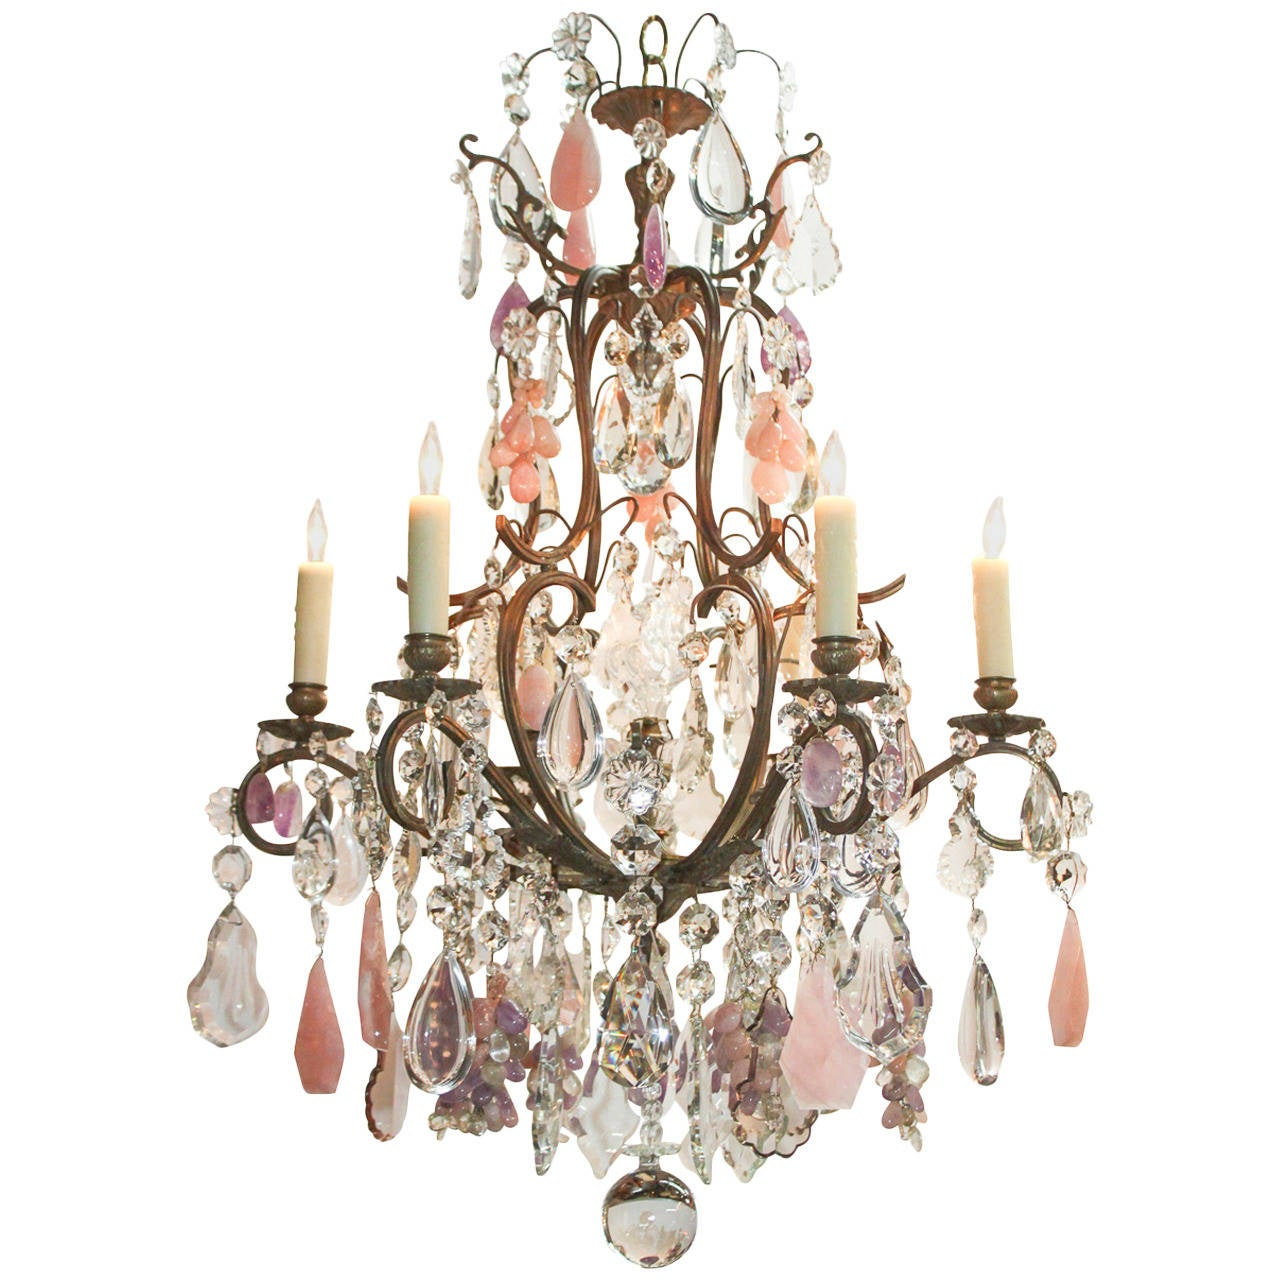 19th Century French Bronze and Rock Crystal Chandelier For Sale at 1stdibs - 19th Century French Bronze And Rock Crystal Chandelier For Sale At